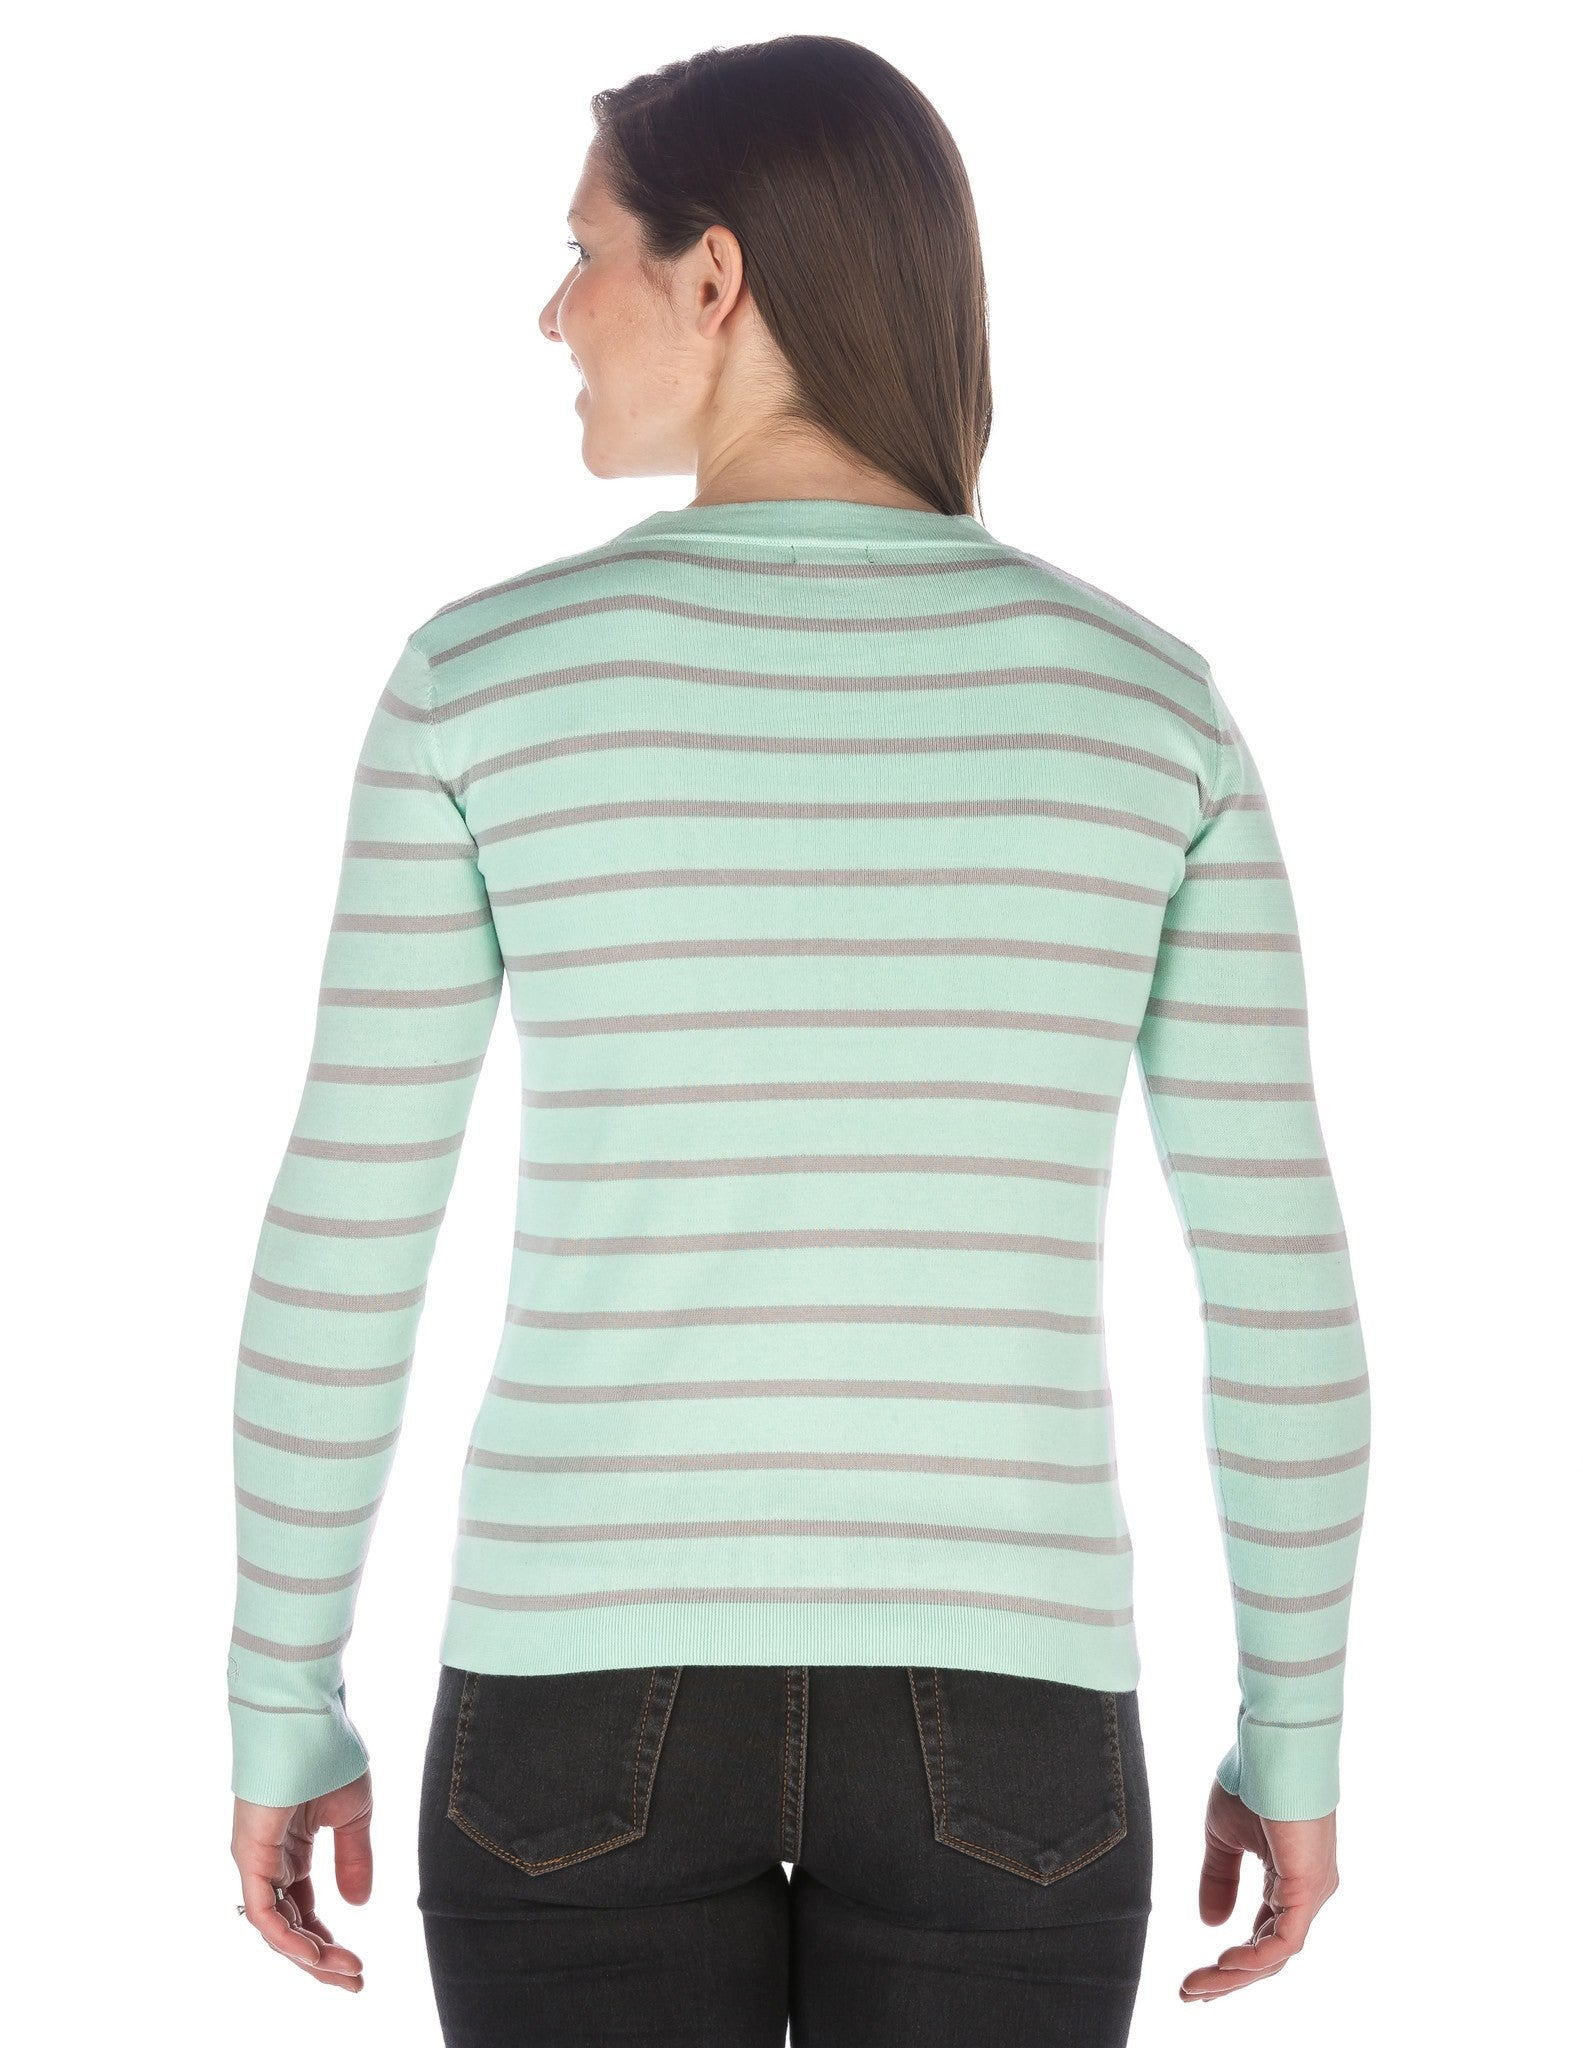 Stripes Aqua - Gray